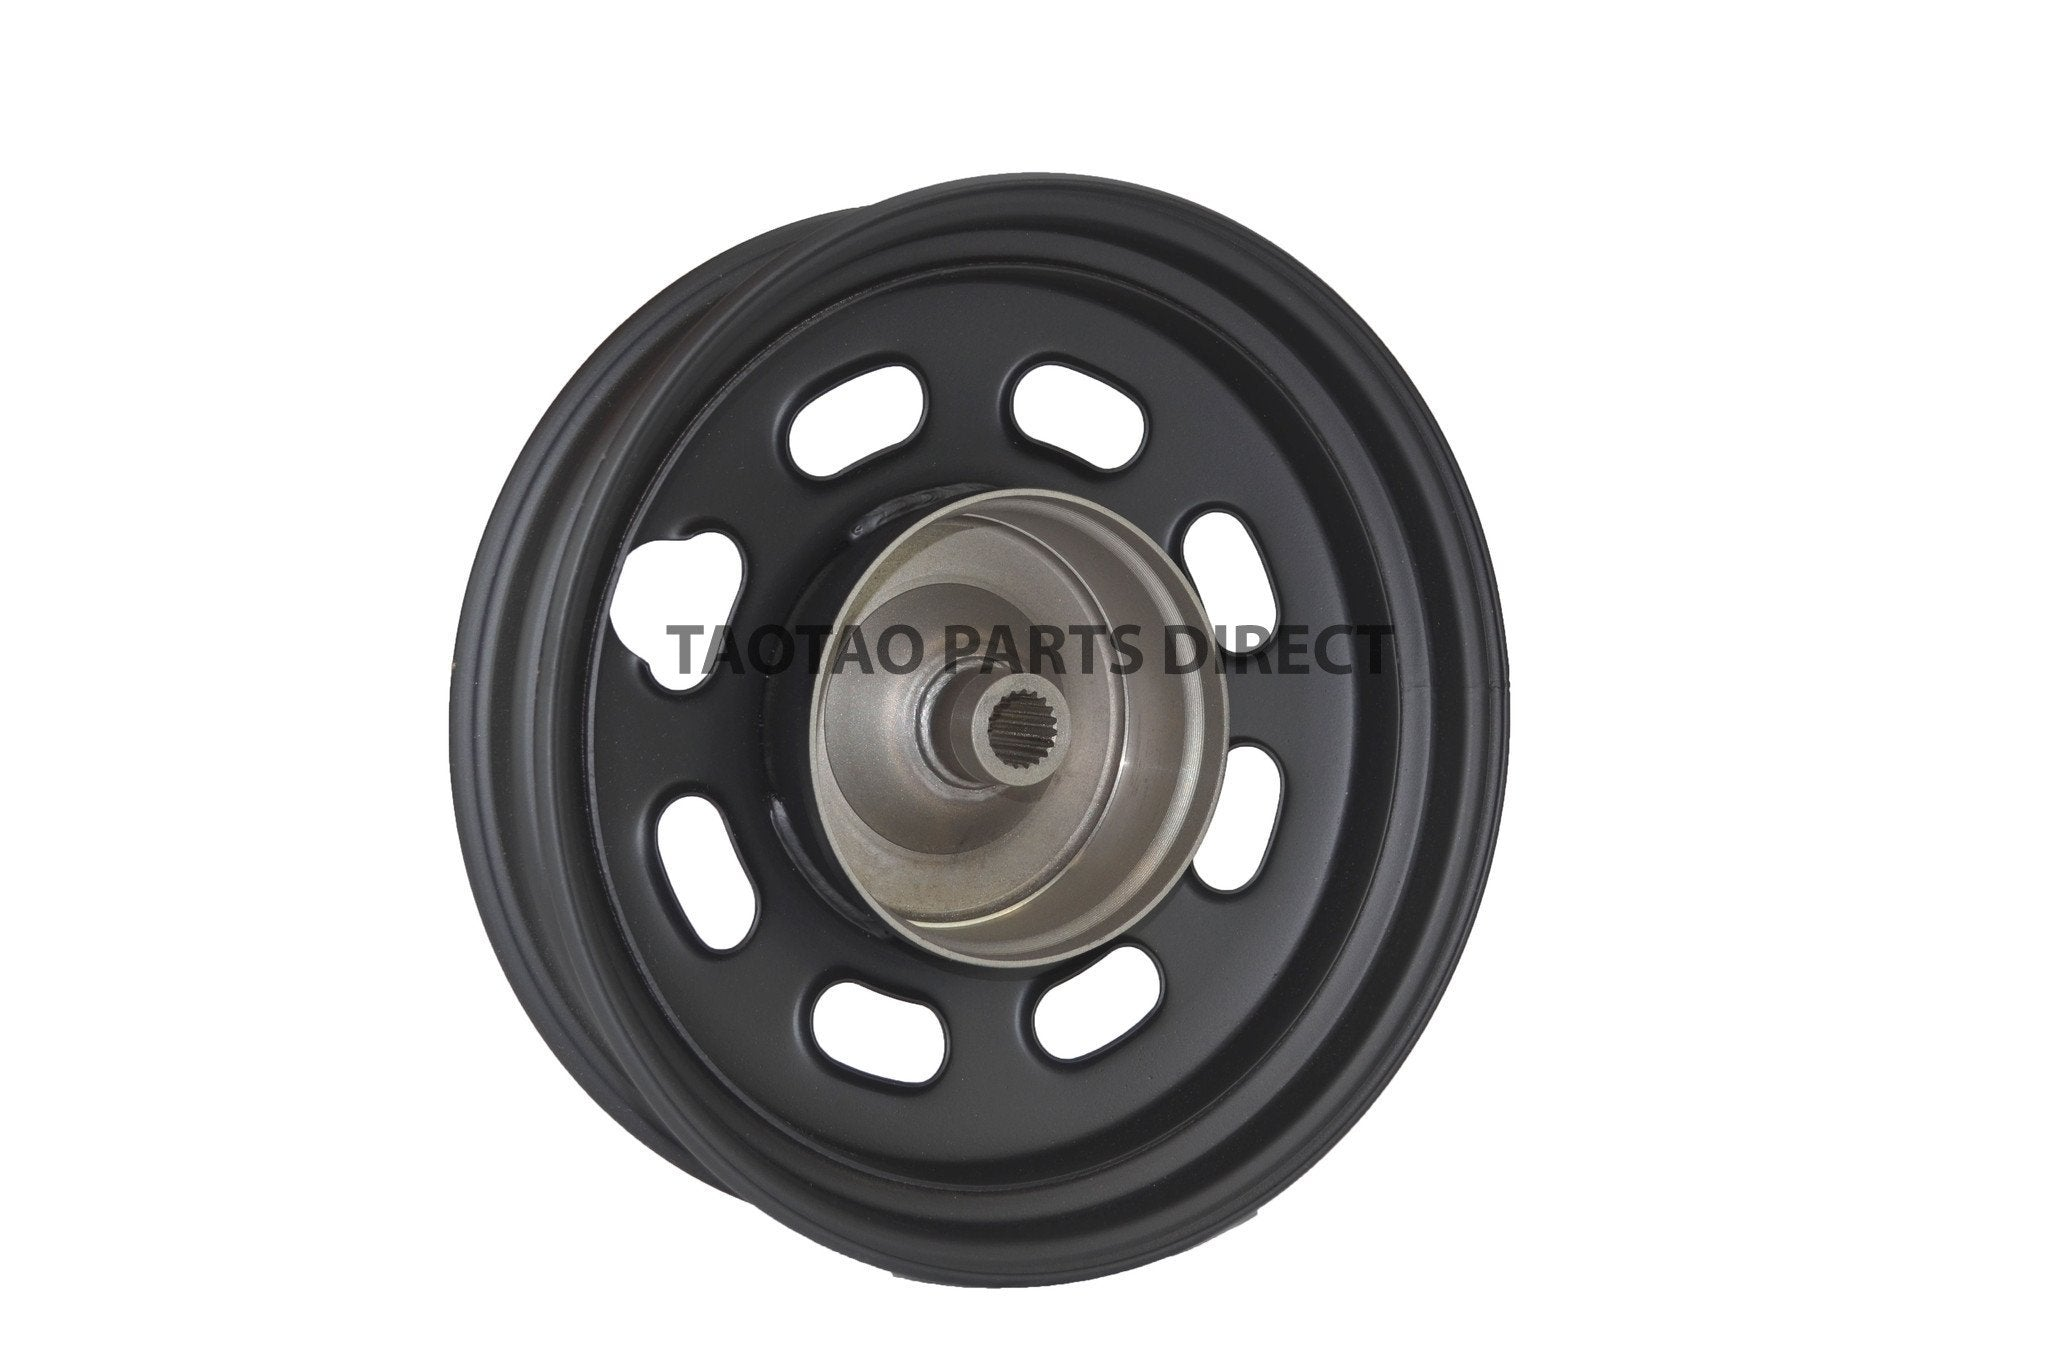 Scooter Parts - ATM50A1 Rear Rim